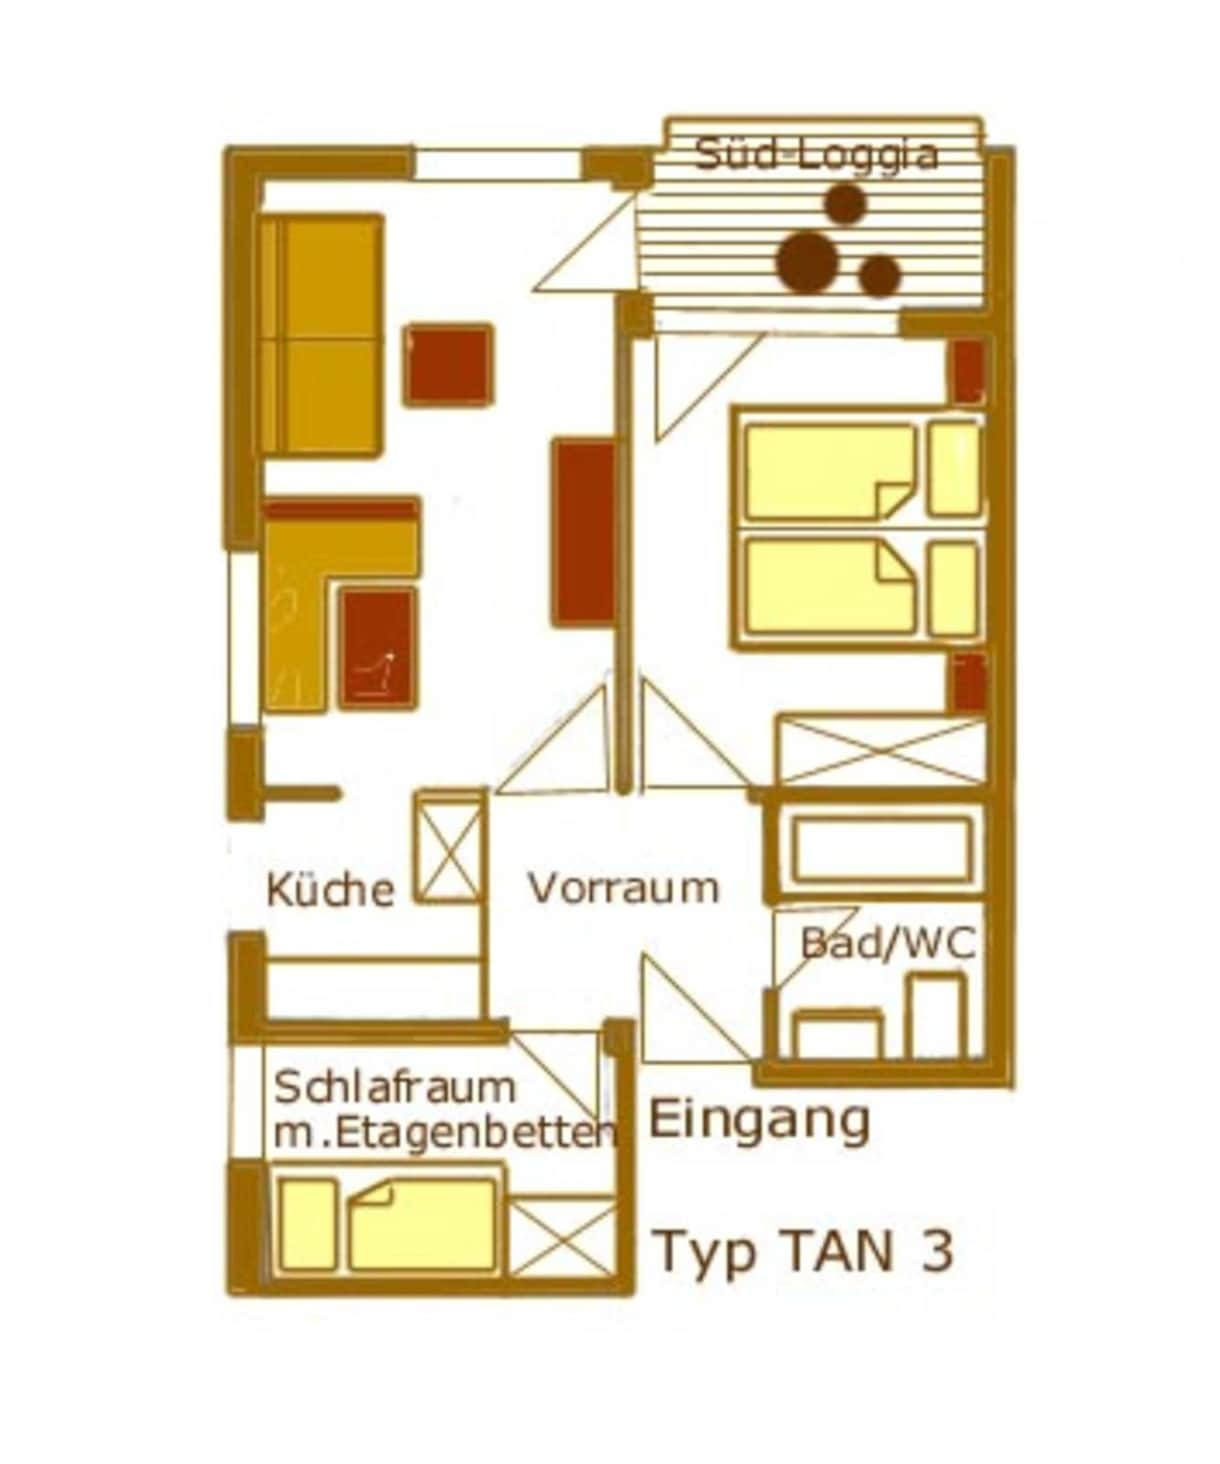 Appartements Vilsalp TAN 3 süd Grundriss